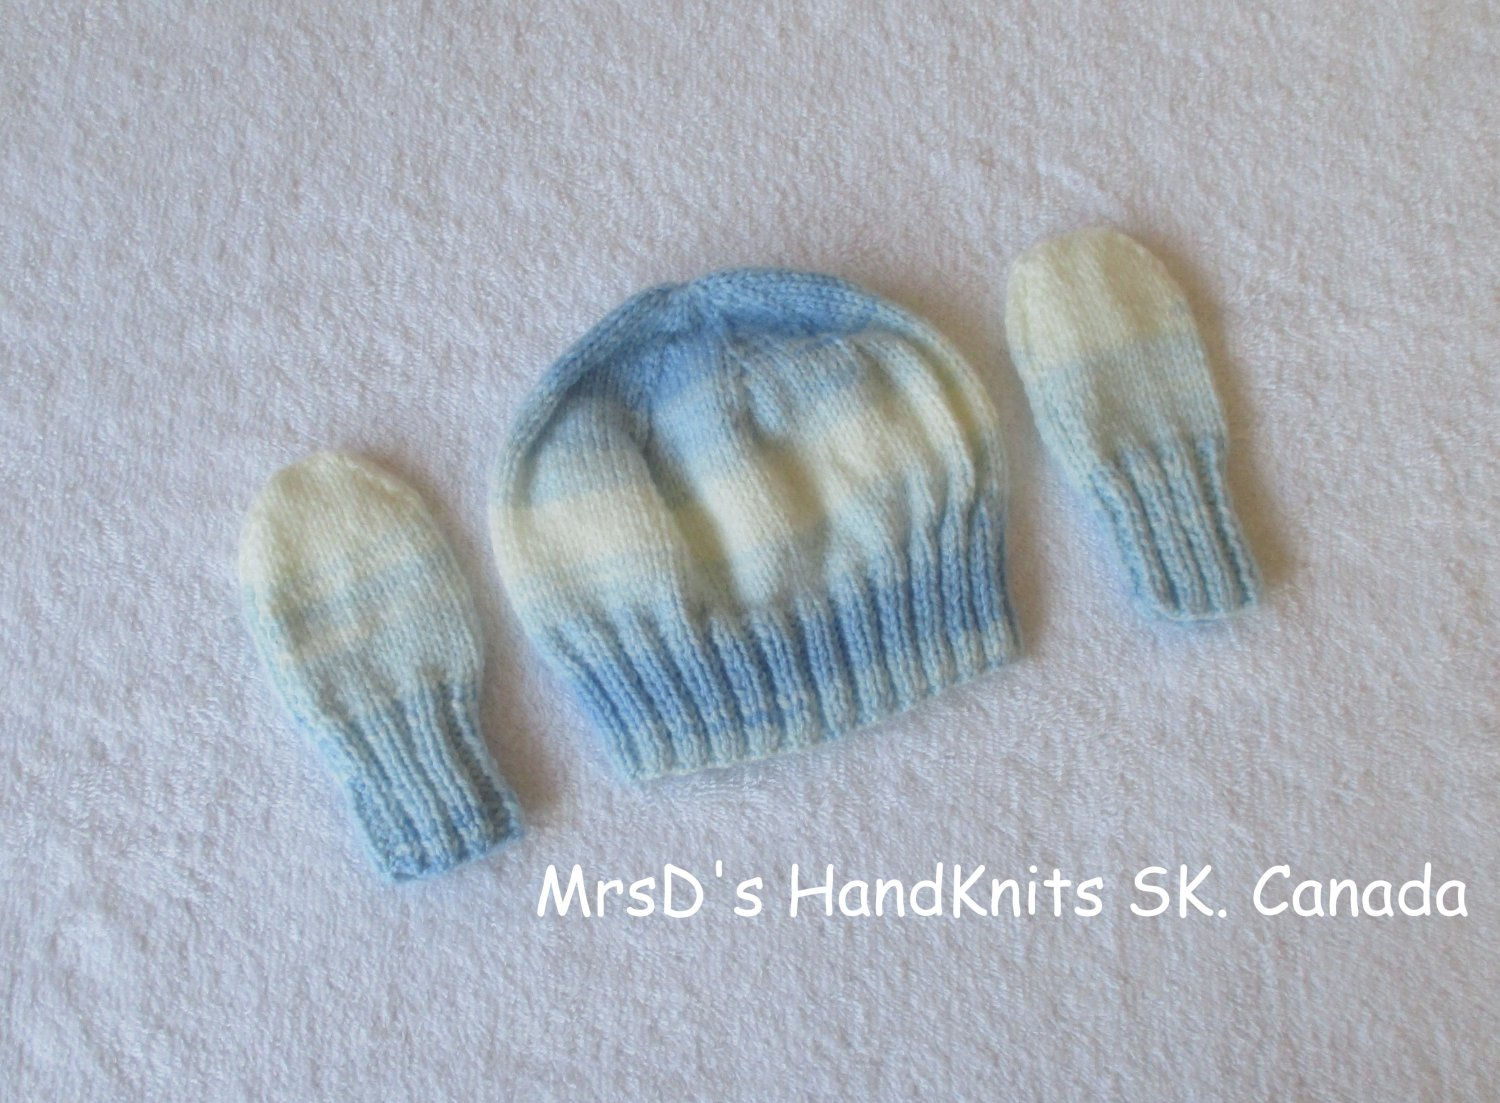 Handknit Baby Hat & Mittens in Shades of Bue and White